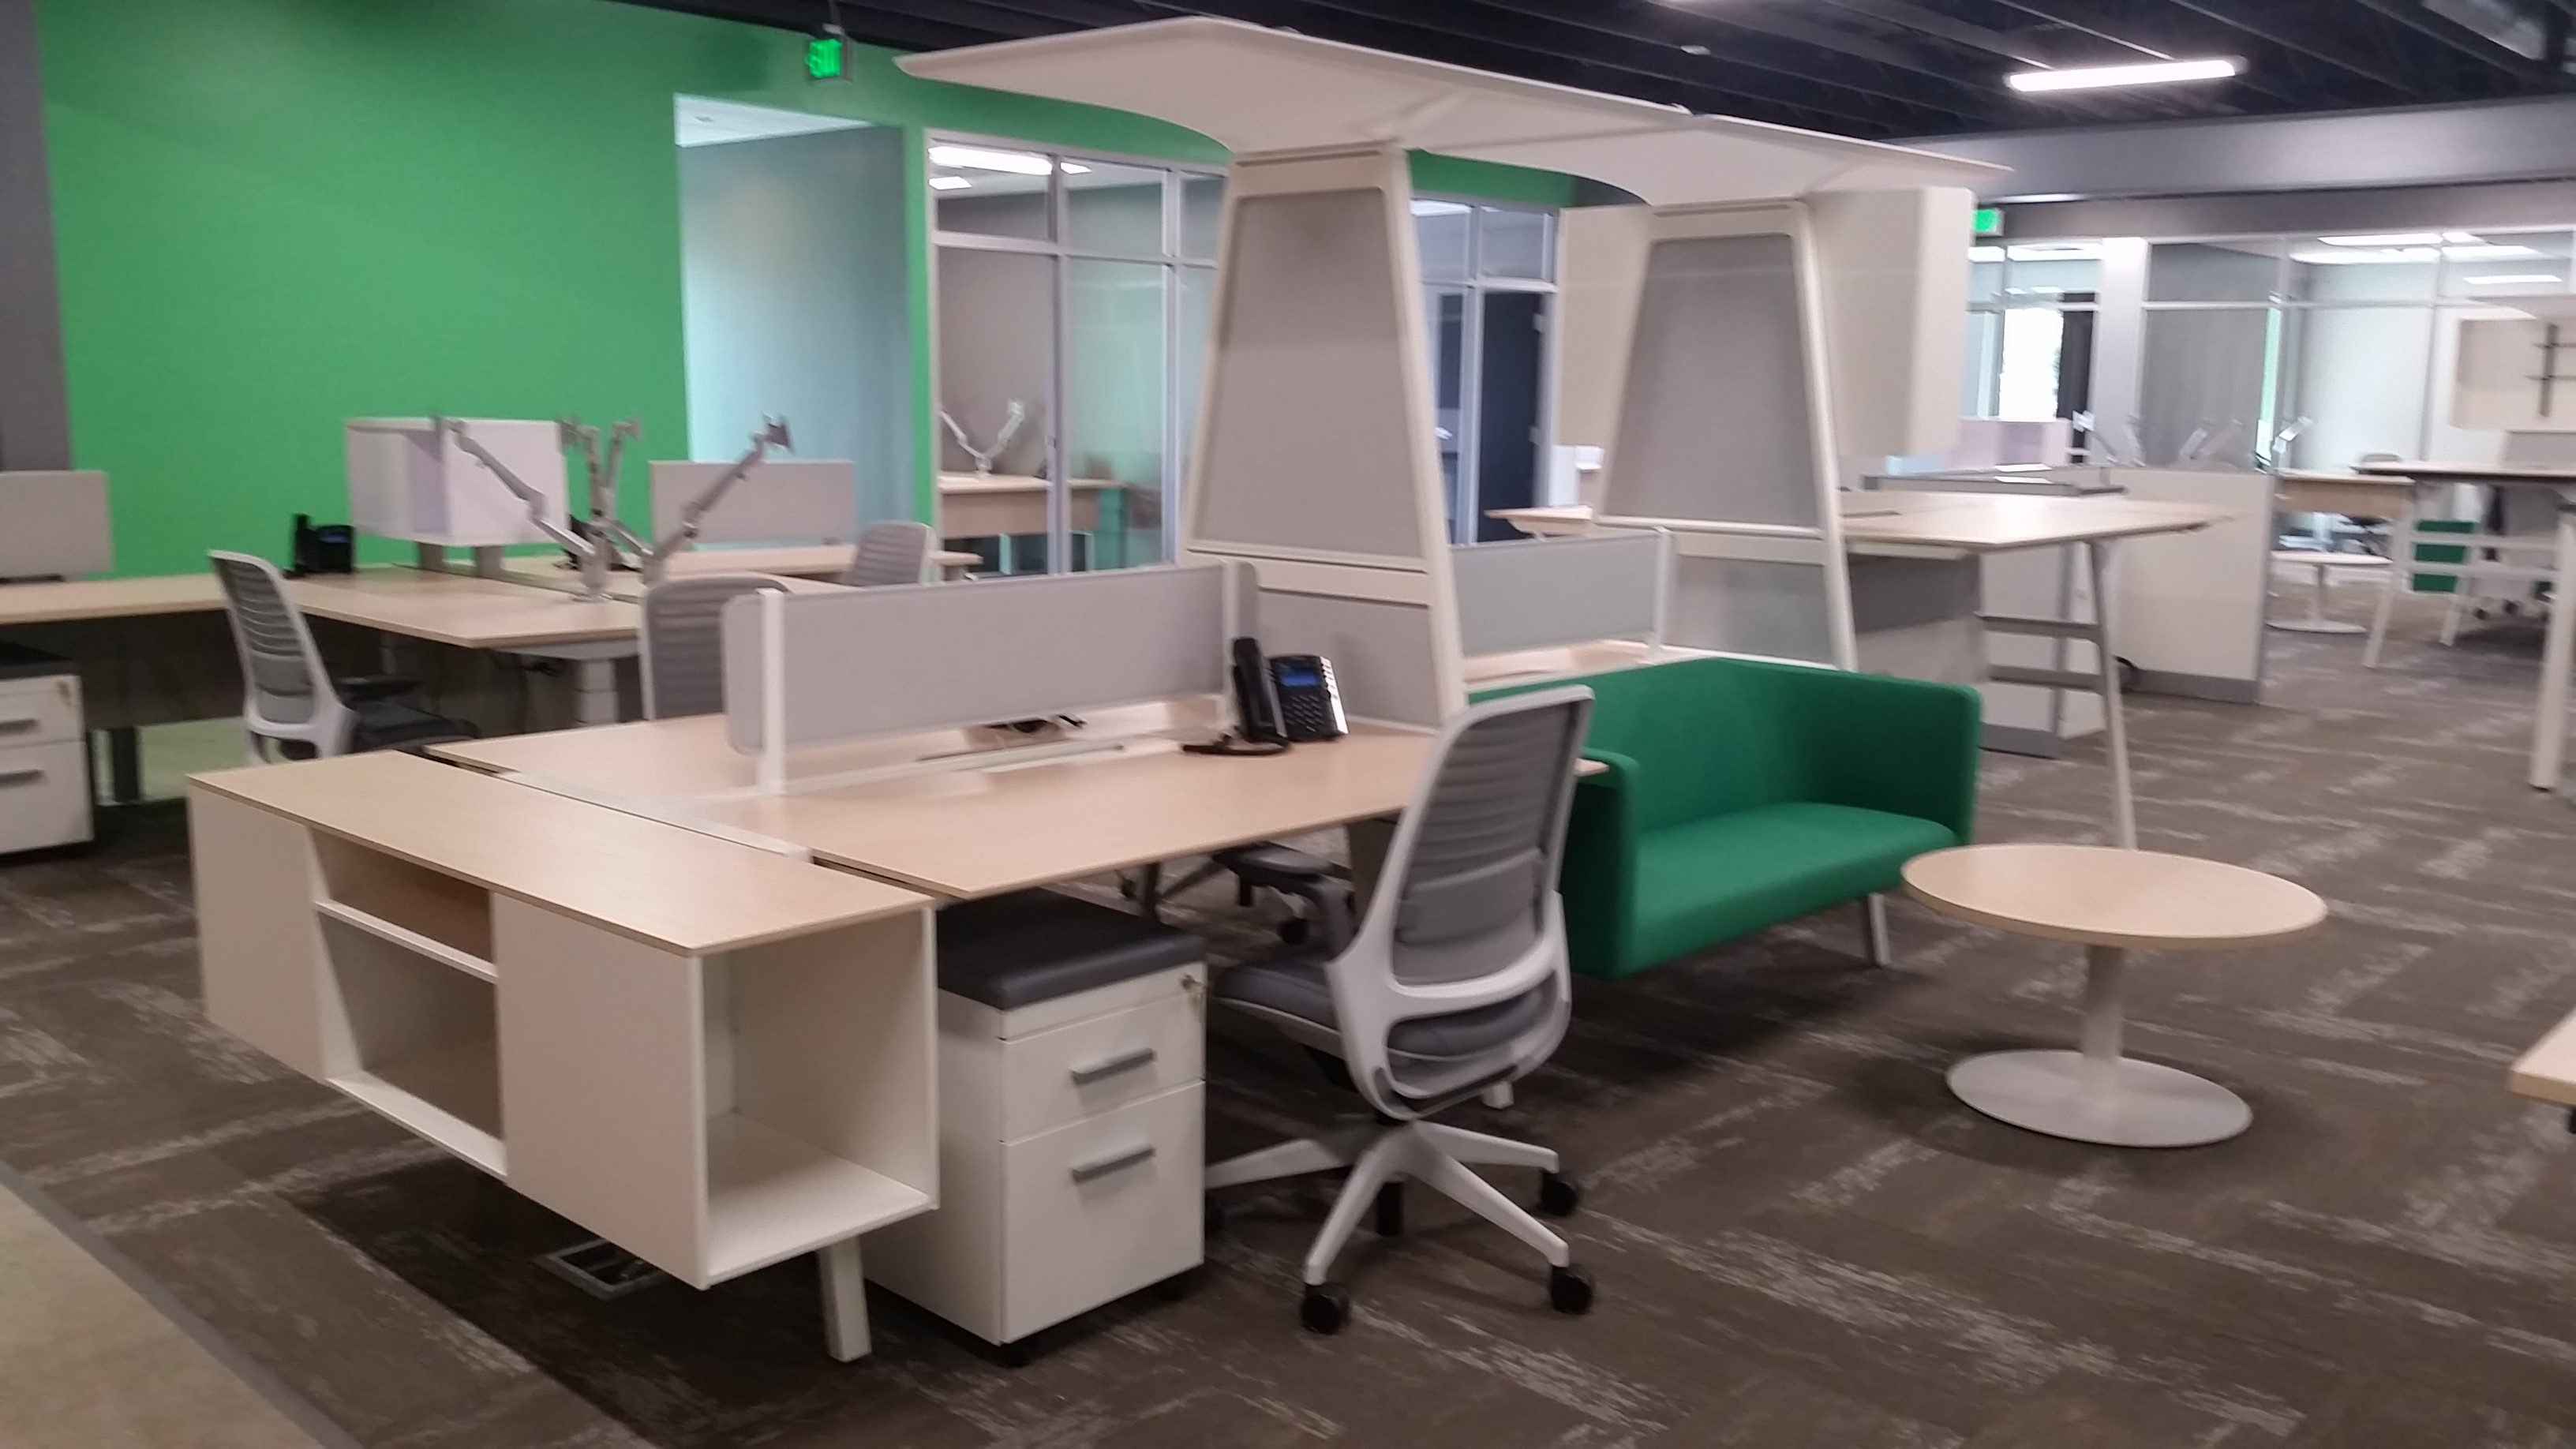 Group desking areas that have high hanging shelf